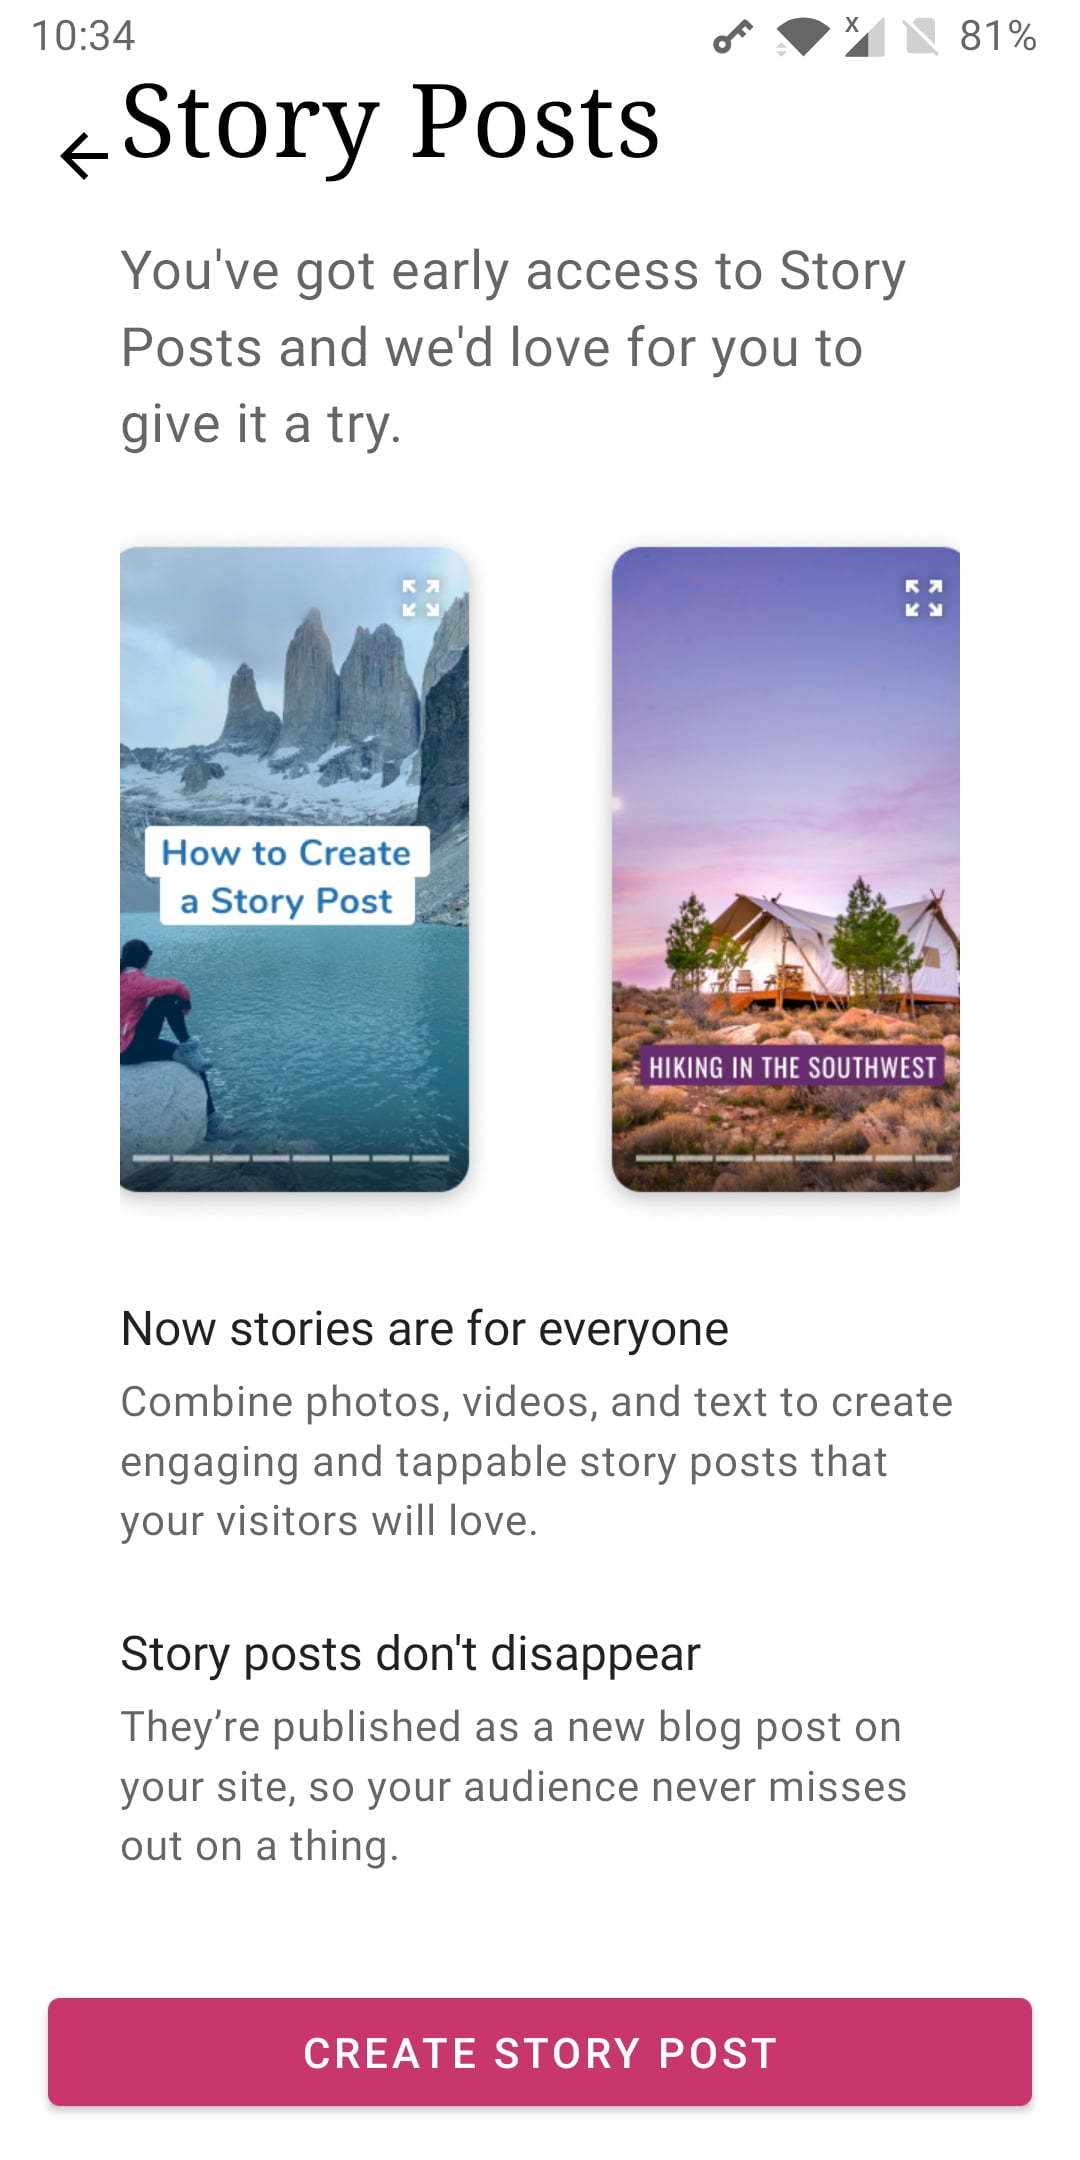 In product screenshot. You've got early access to Story Posts and we'd love for you to give it a try. Now stories are for everyoneCombine photos, videos, and text to create engaging and tappable story posts that your visitors will love.Story posts don't disappearThey're published as a new blog post on your site, so your audience never misses out on a thing.